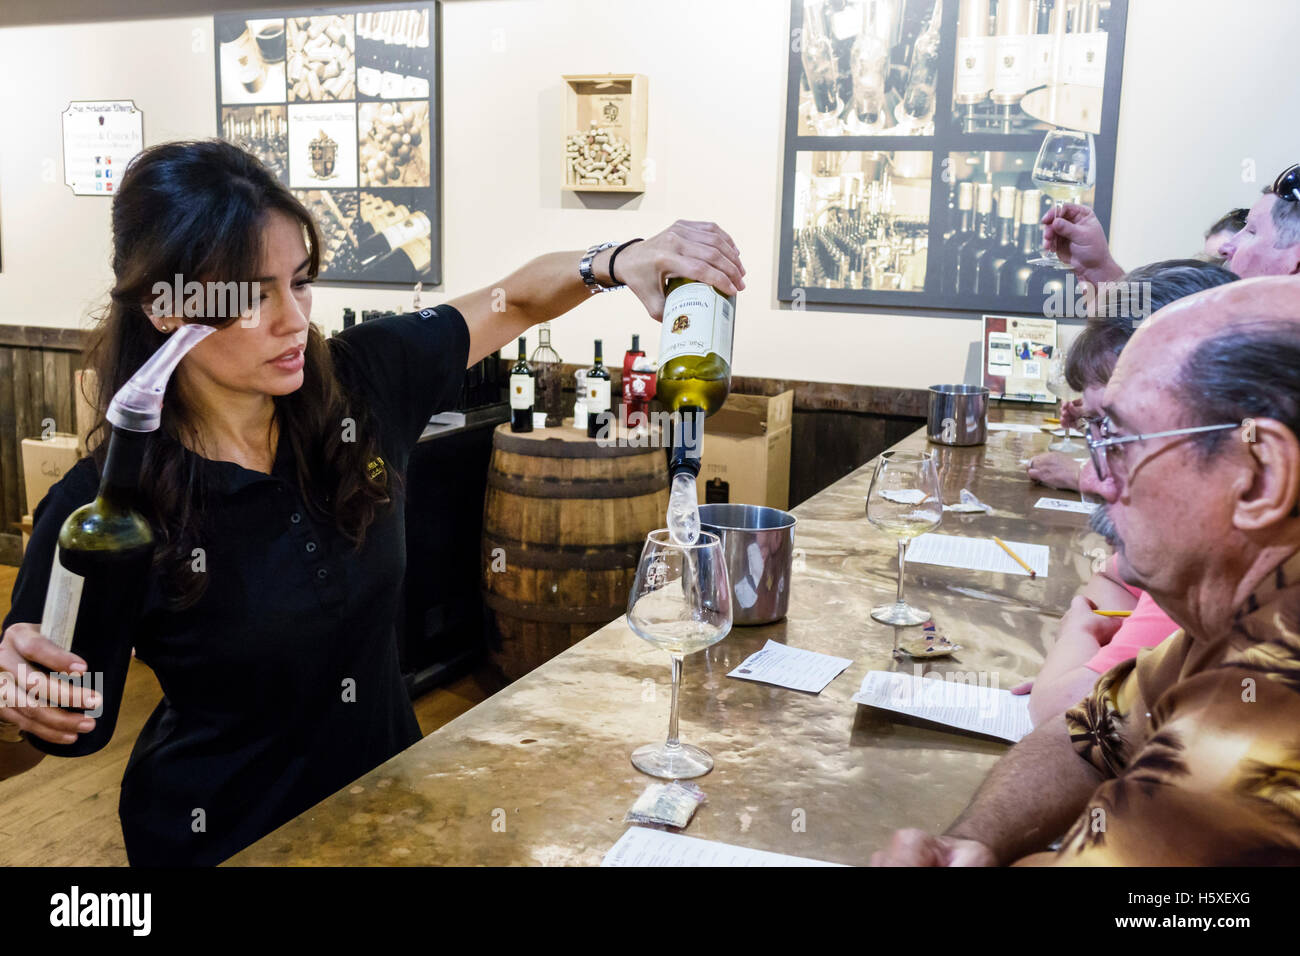 St. Saint Augustine Florida San Sebastian Winery inside wine tasting event woman man Hispanic pouring hostess - Stock Image